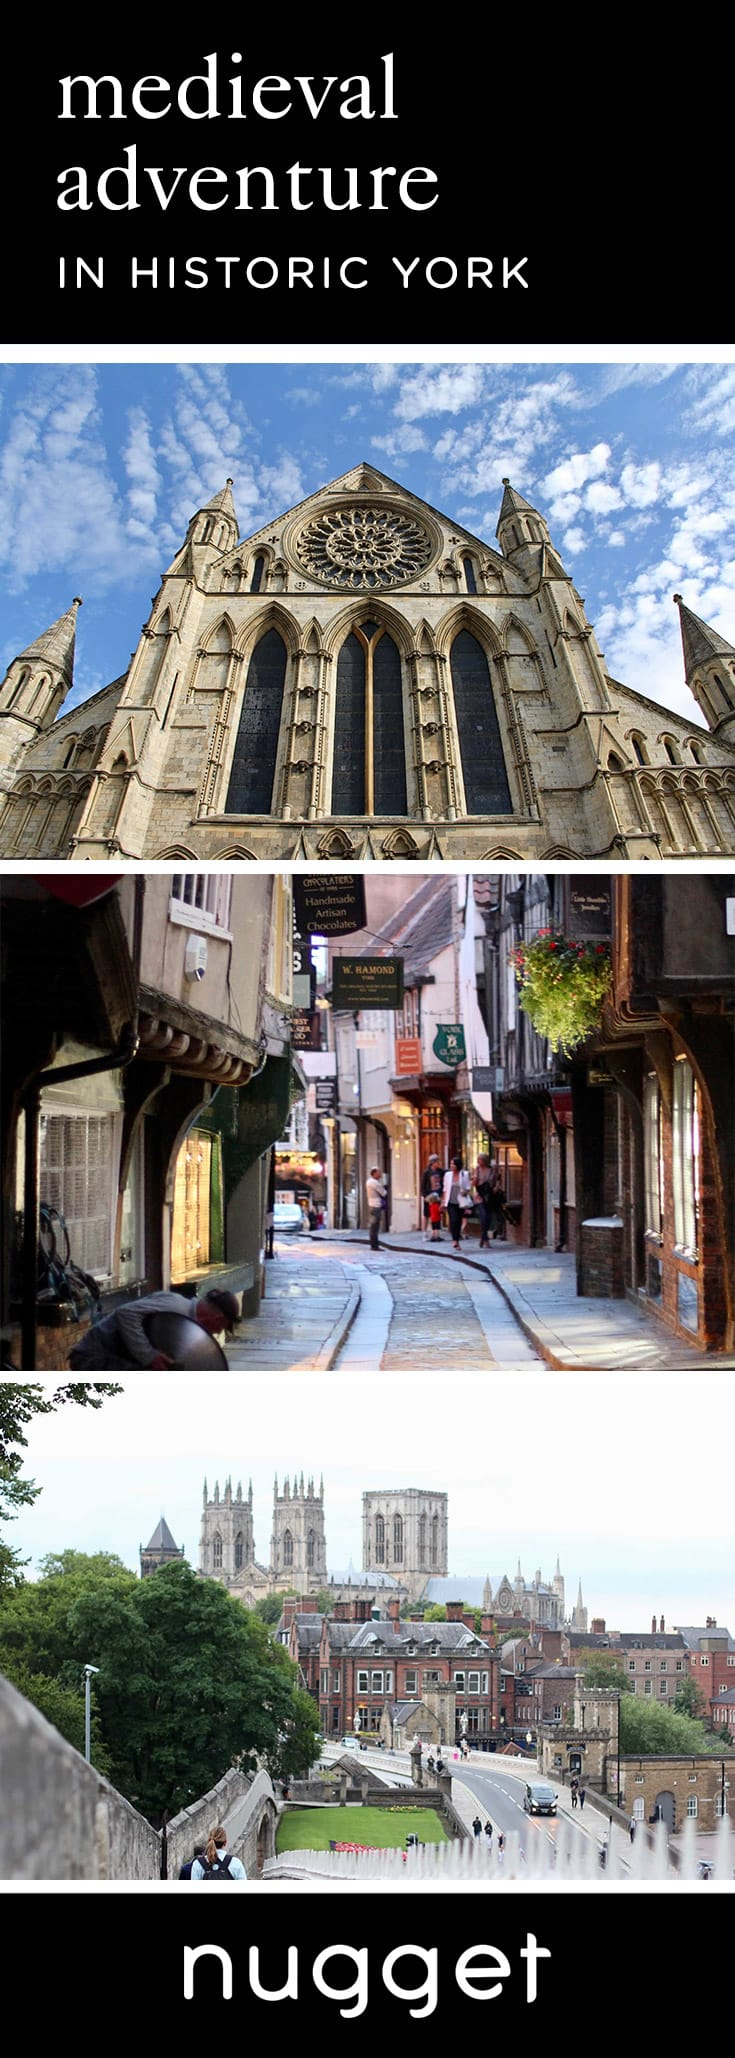 A Medieval Adventure in Historic York